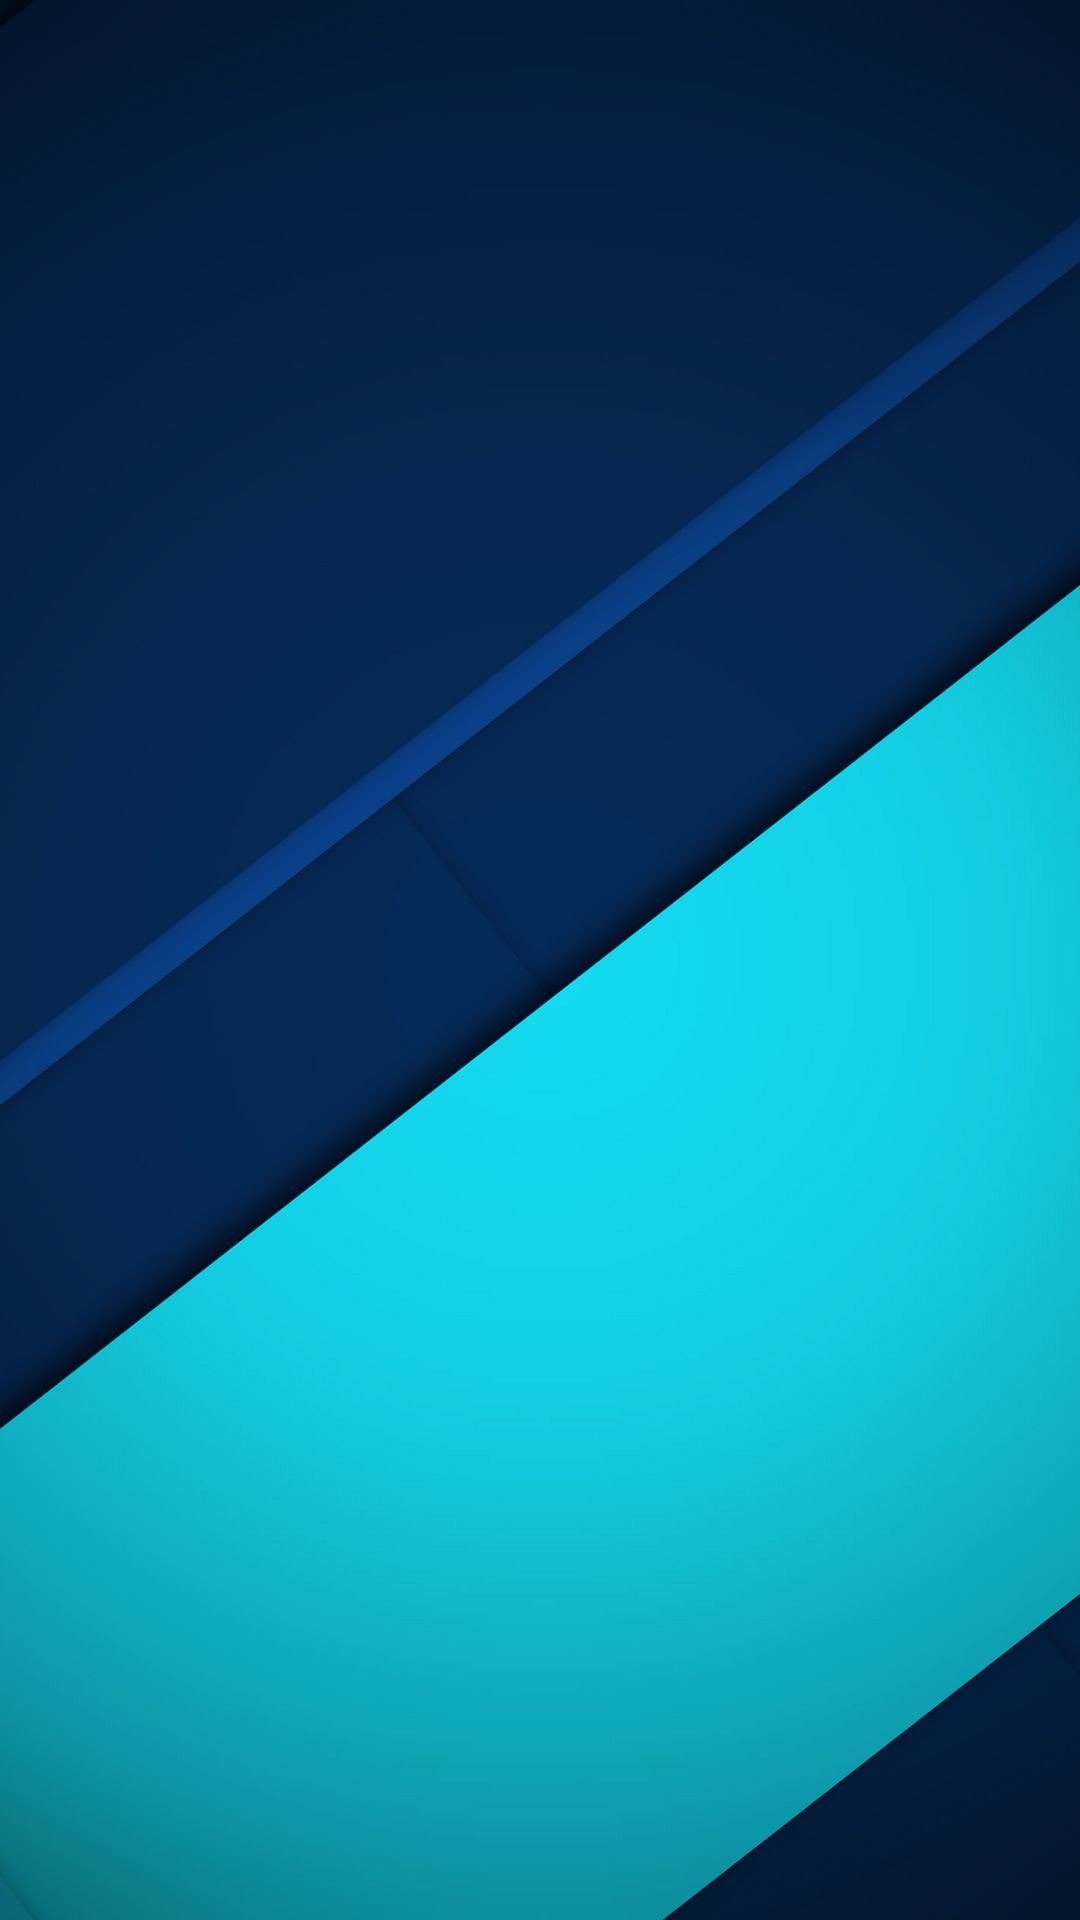 Material Design Hd Mobile Wallpaer15  Vactual Papers